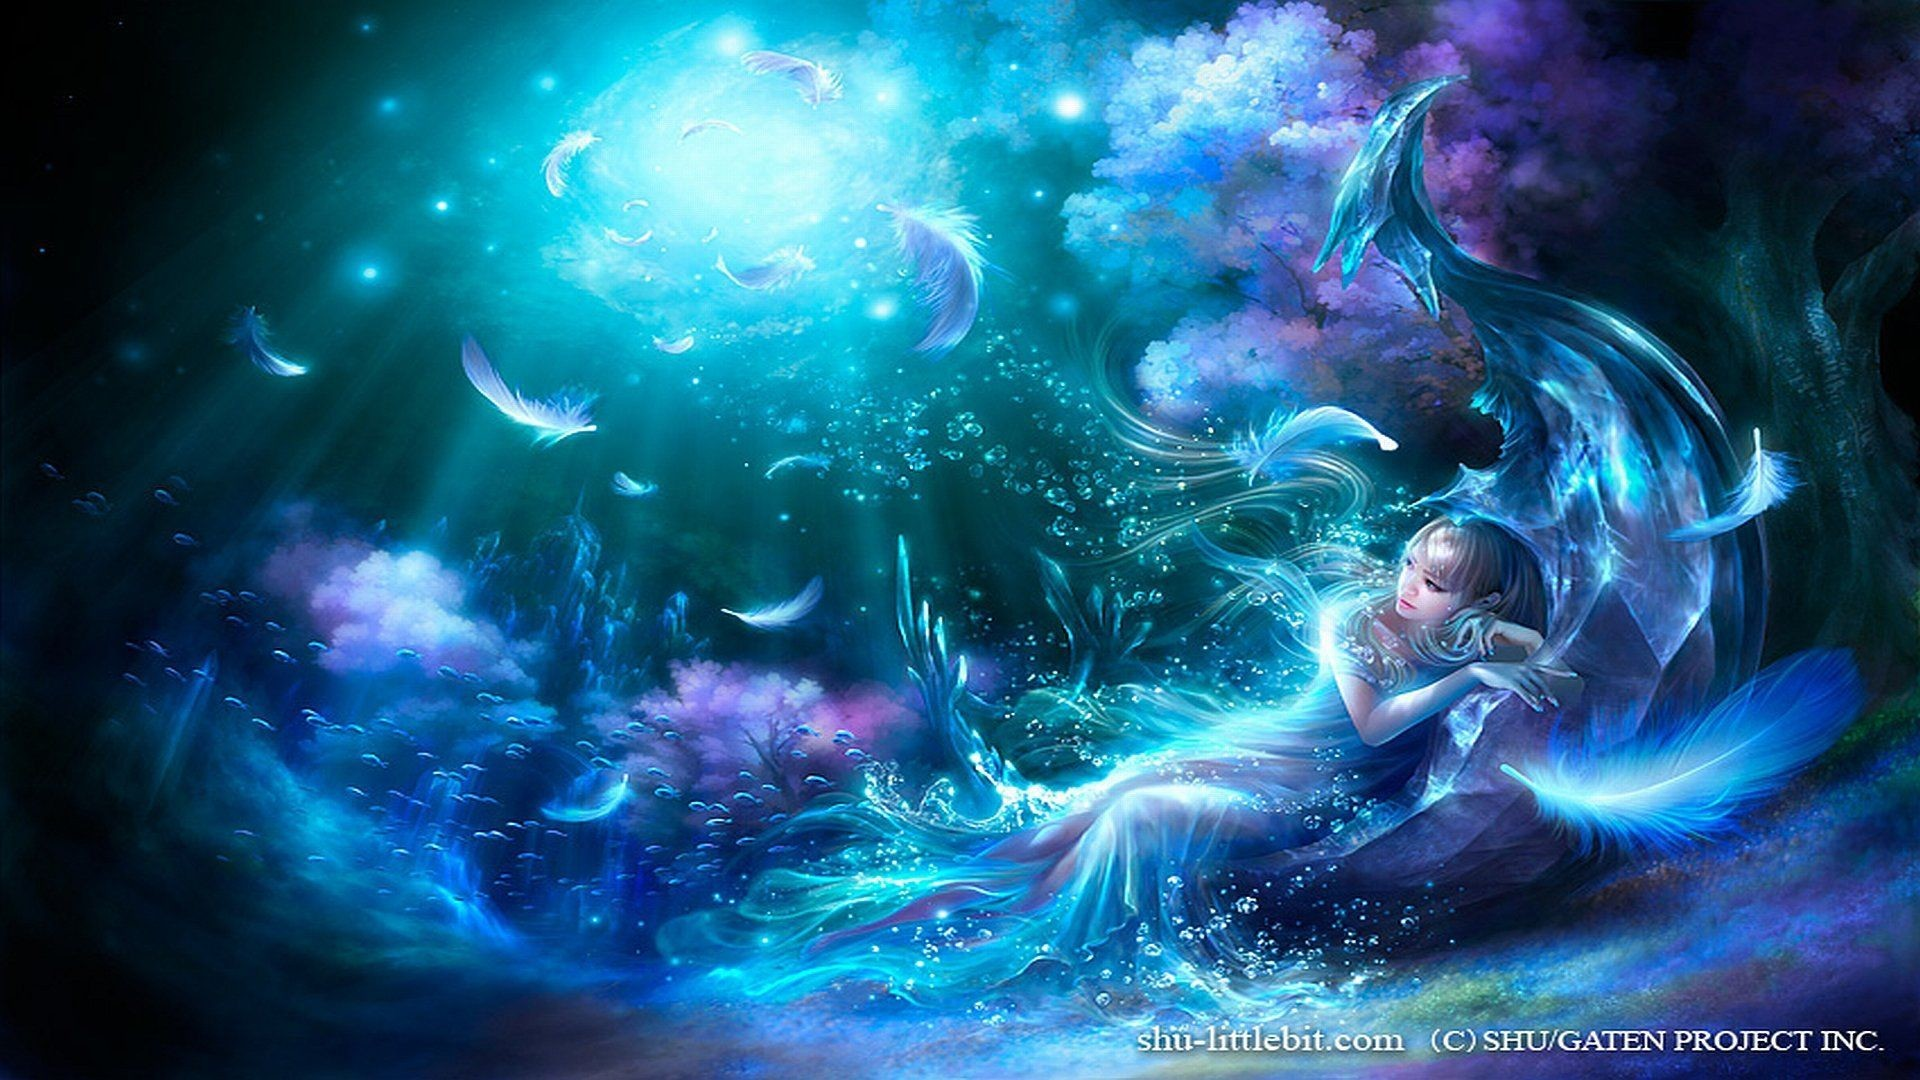 Res: 1920x1080, Wallpapers-Of-Fantasy-Gallery-(74-Plus)-PIC-WPW3012574